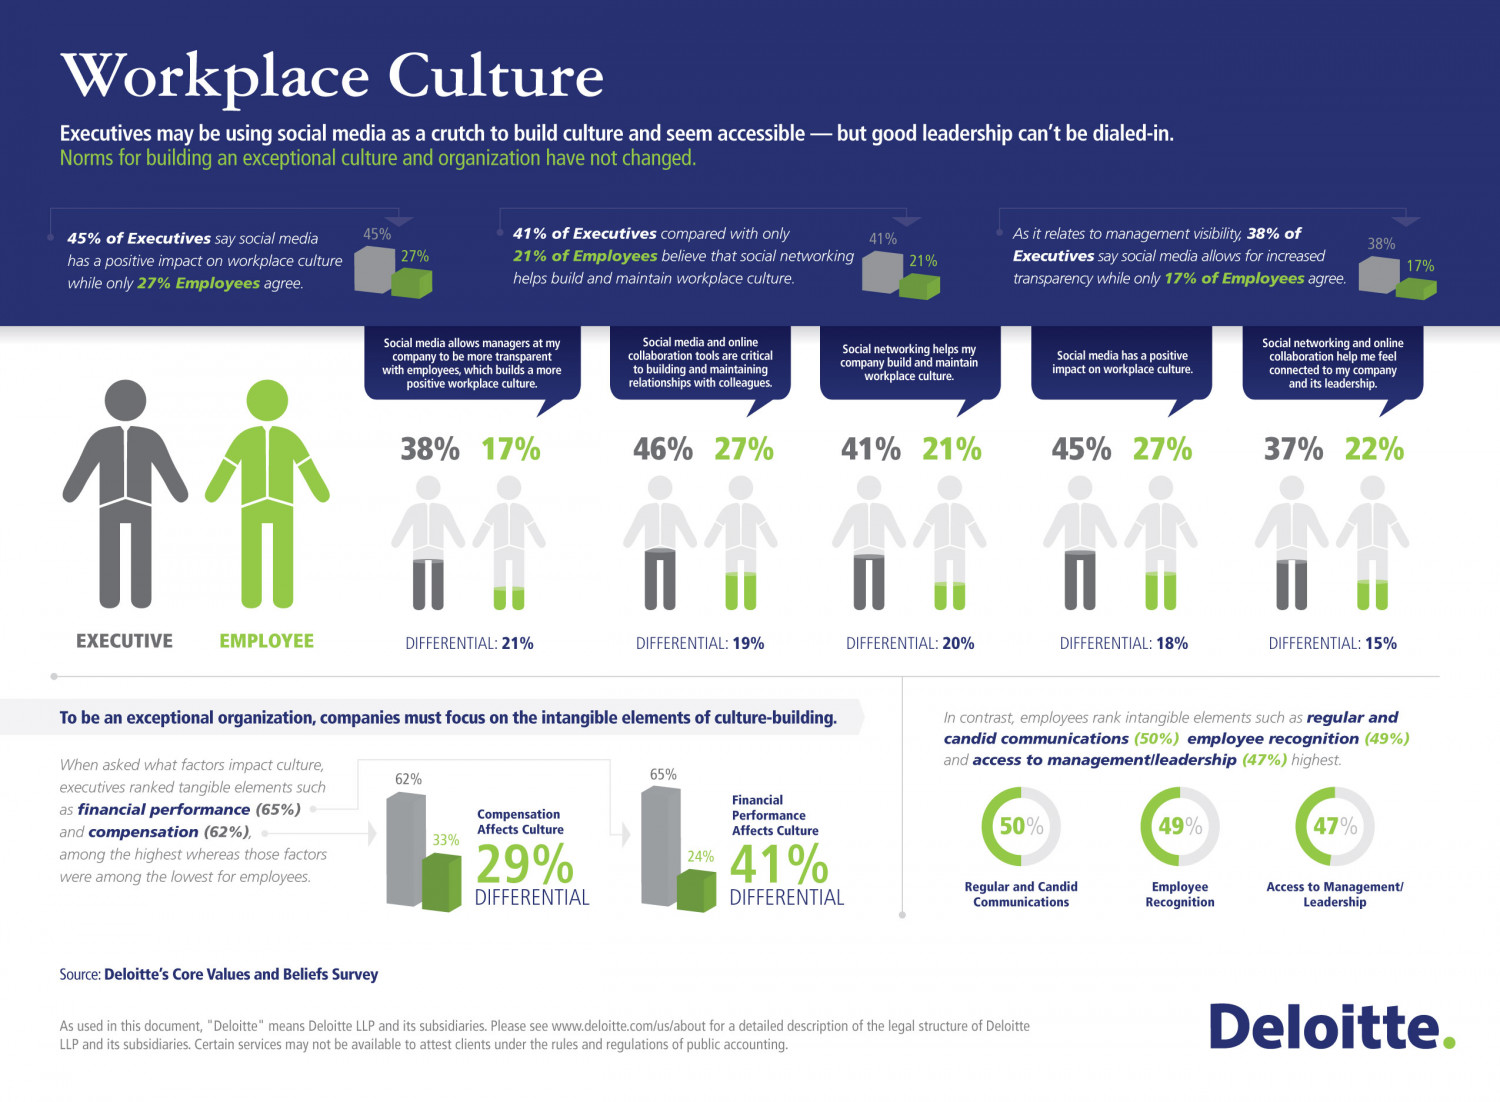 Executives may be using social media as a crutch to build culture and seem accessible — Deloitte Survey Infographic